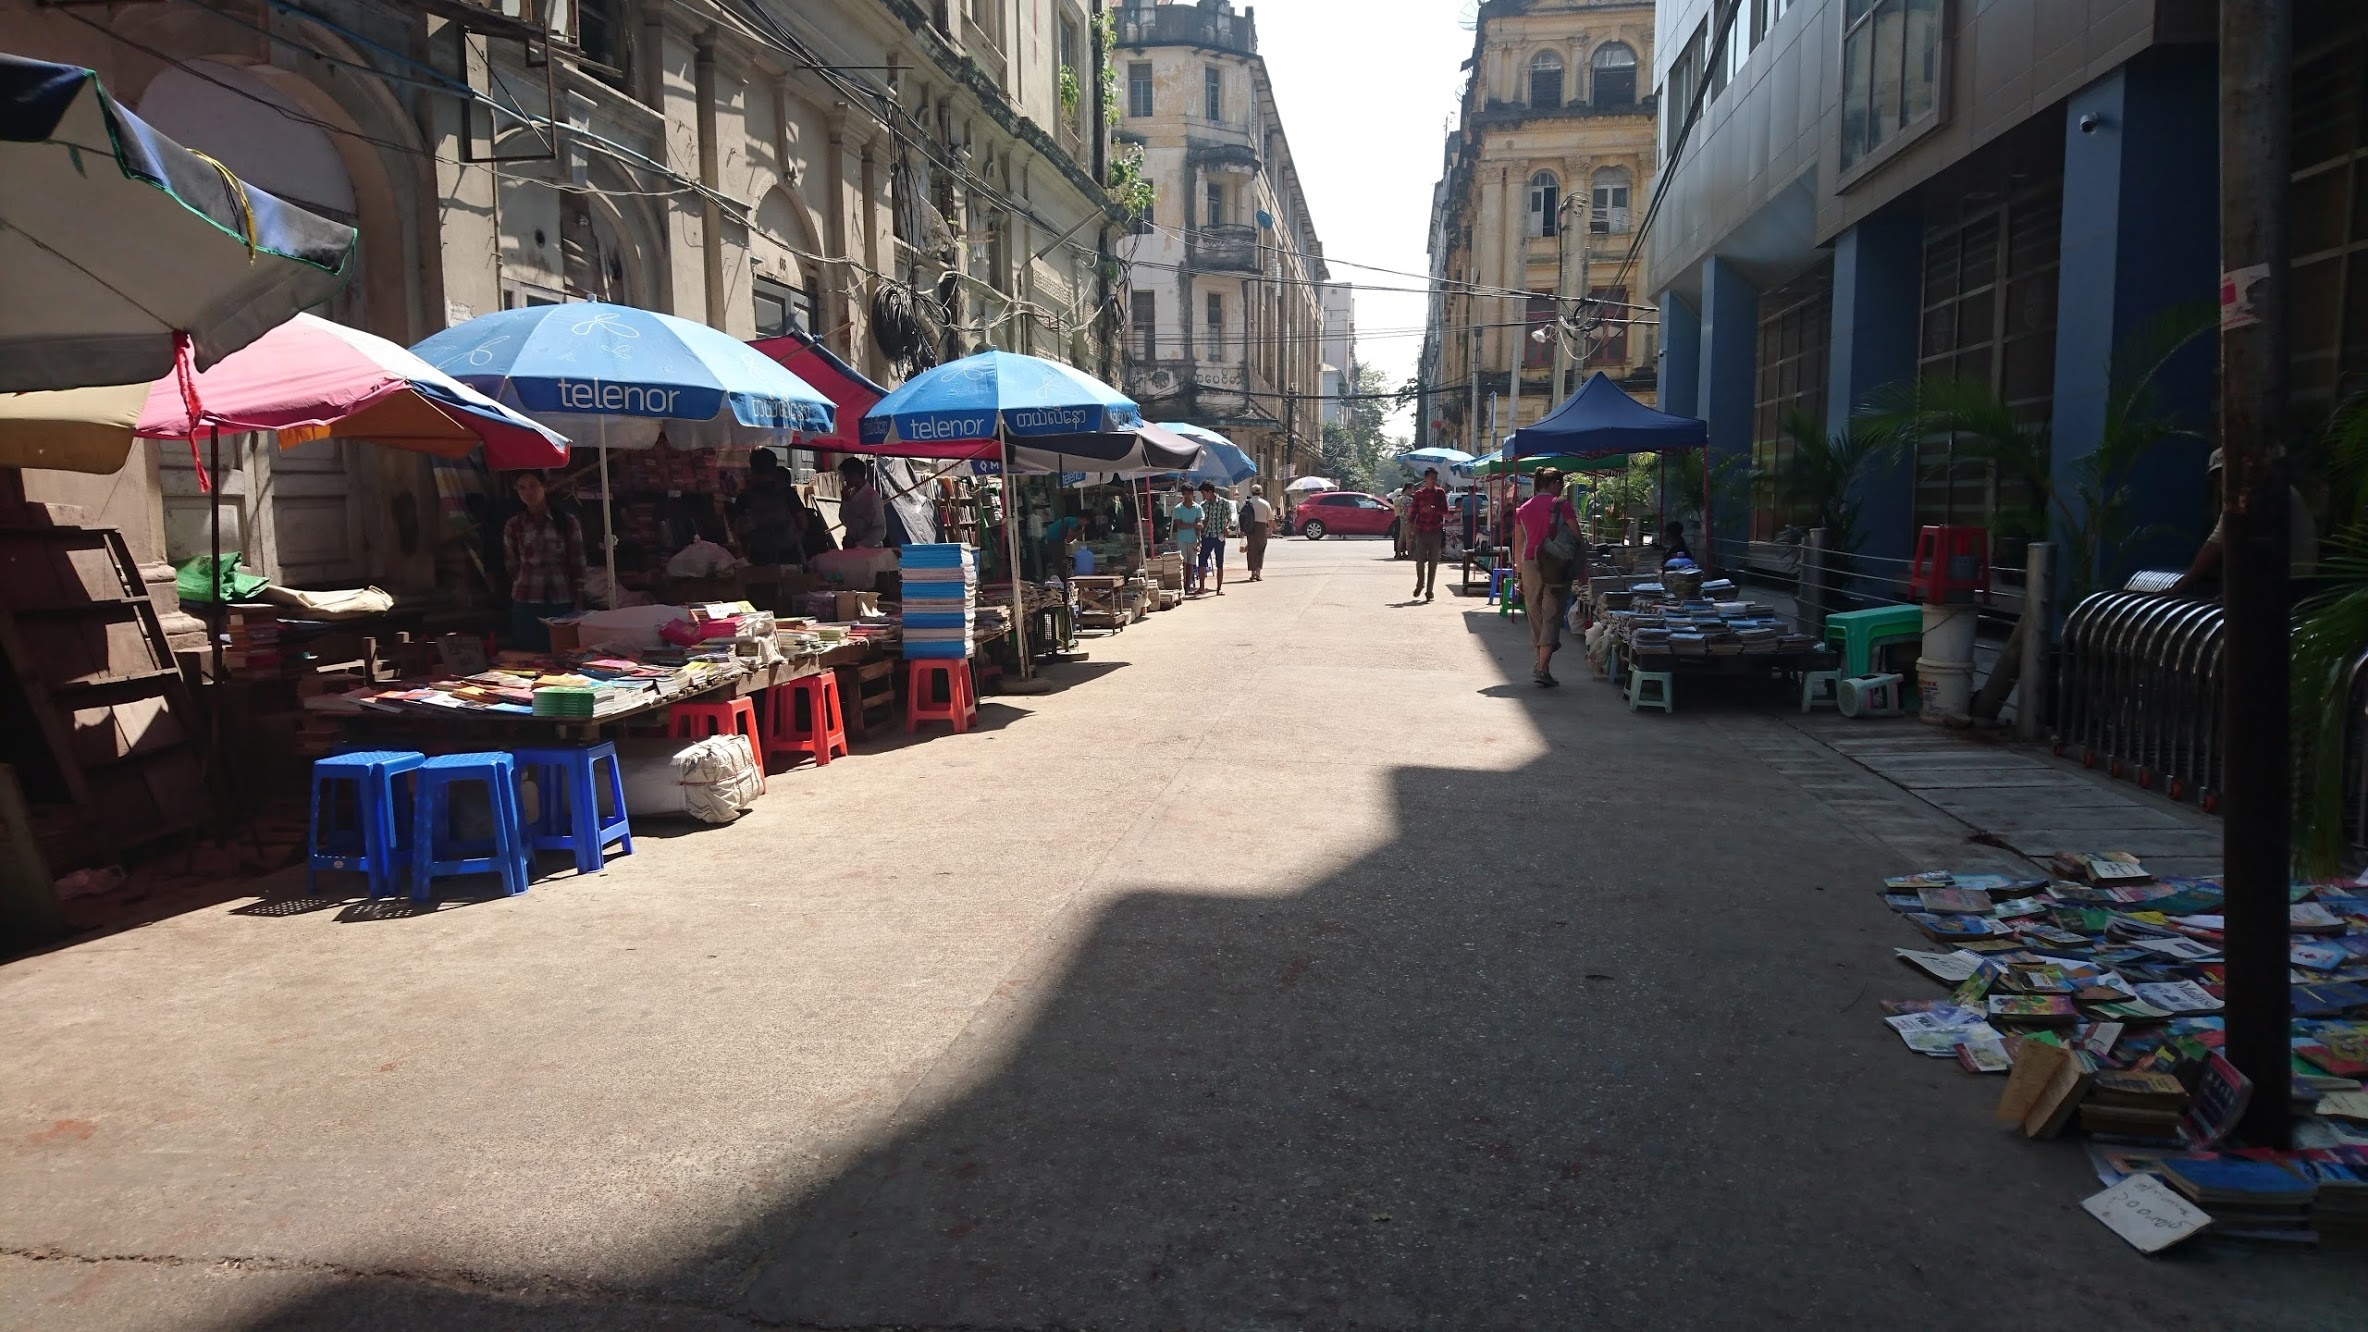 37th Street with its wealth of bookshops and street-side sellers. A lovely quiet, shady spot to spend a few minutes.